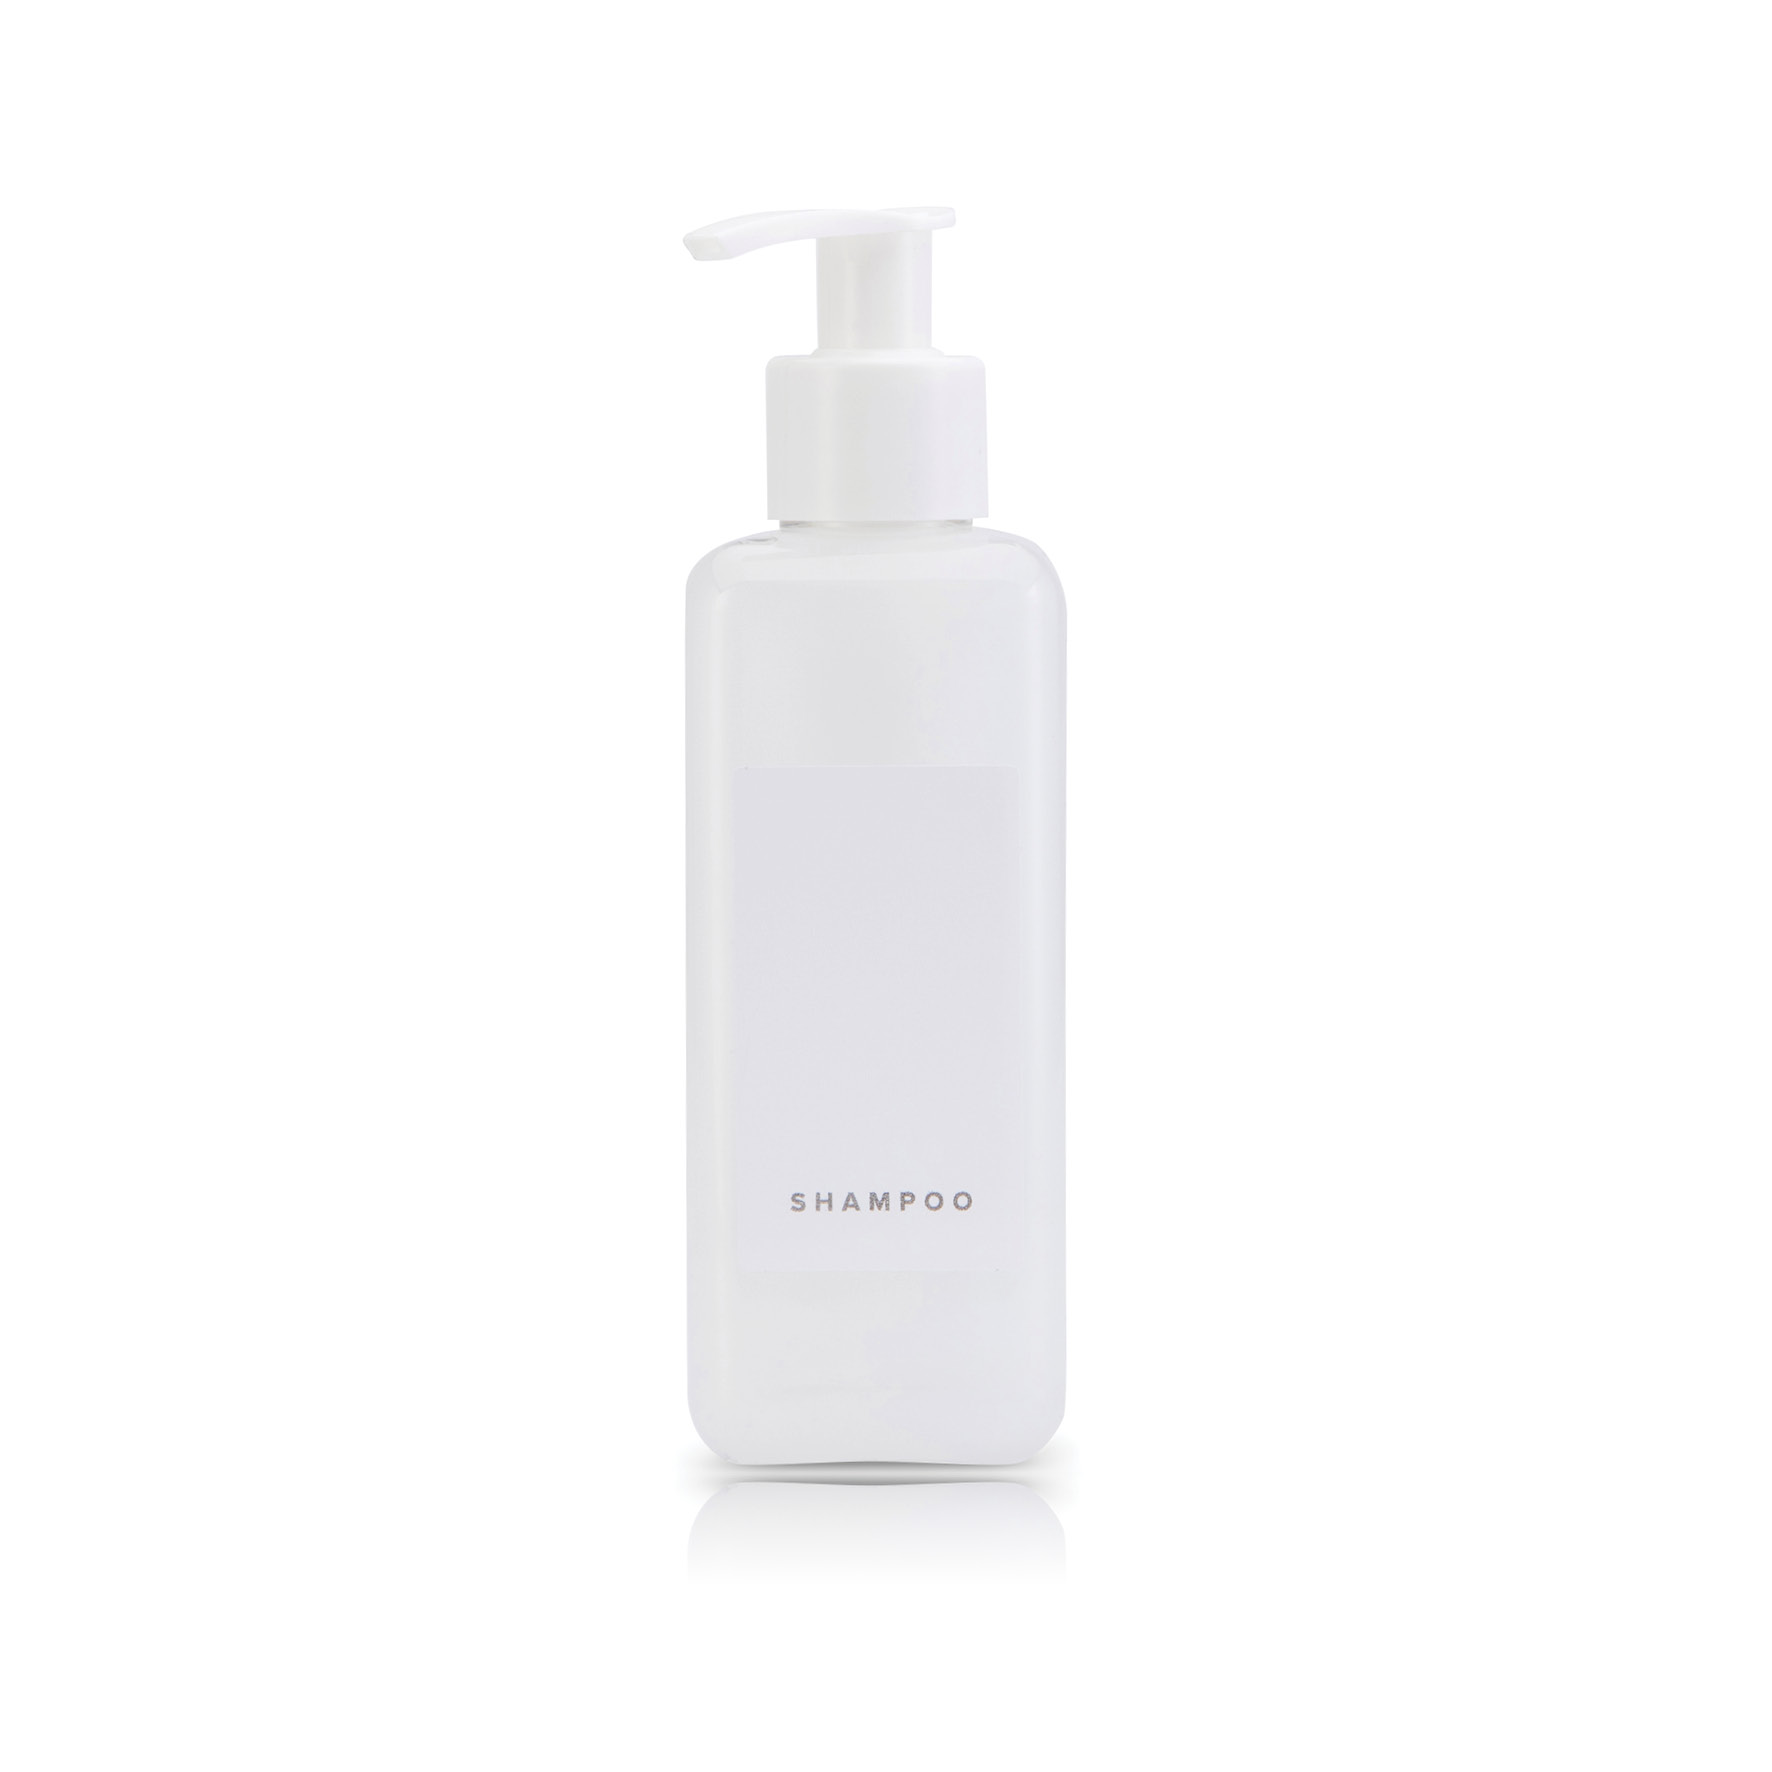 CONTEMP 200 SHAMPOO